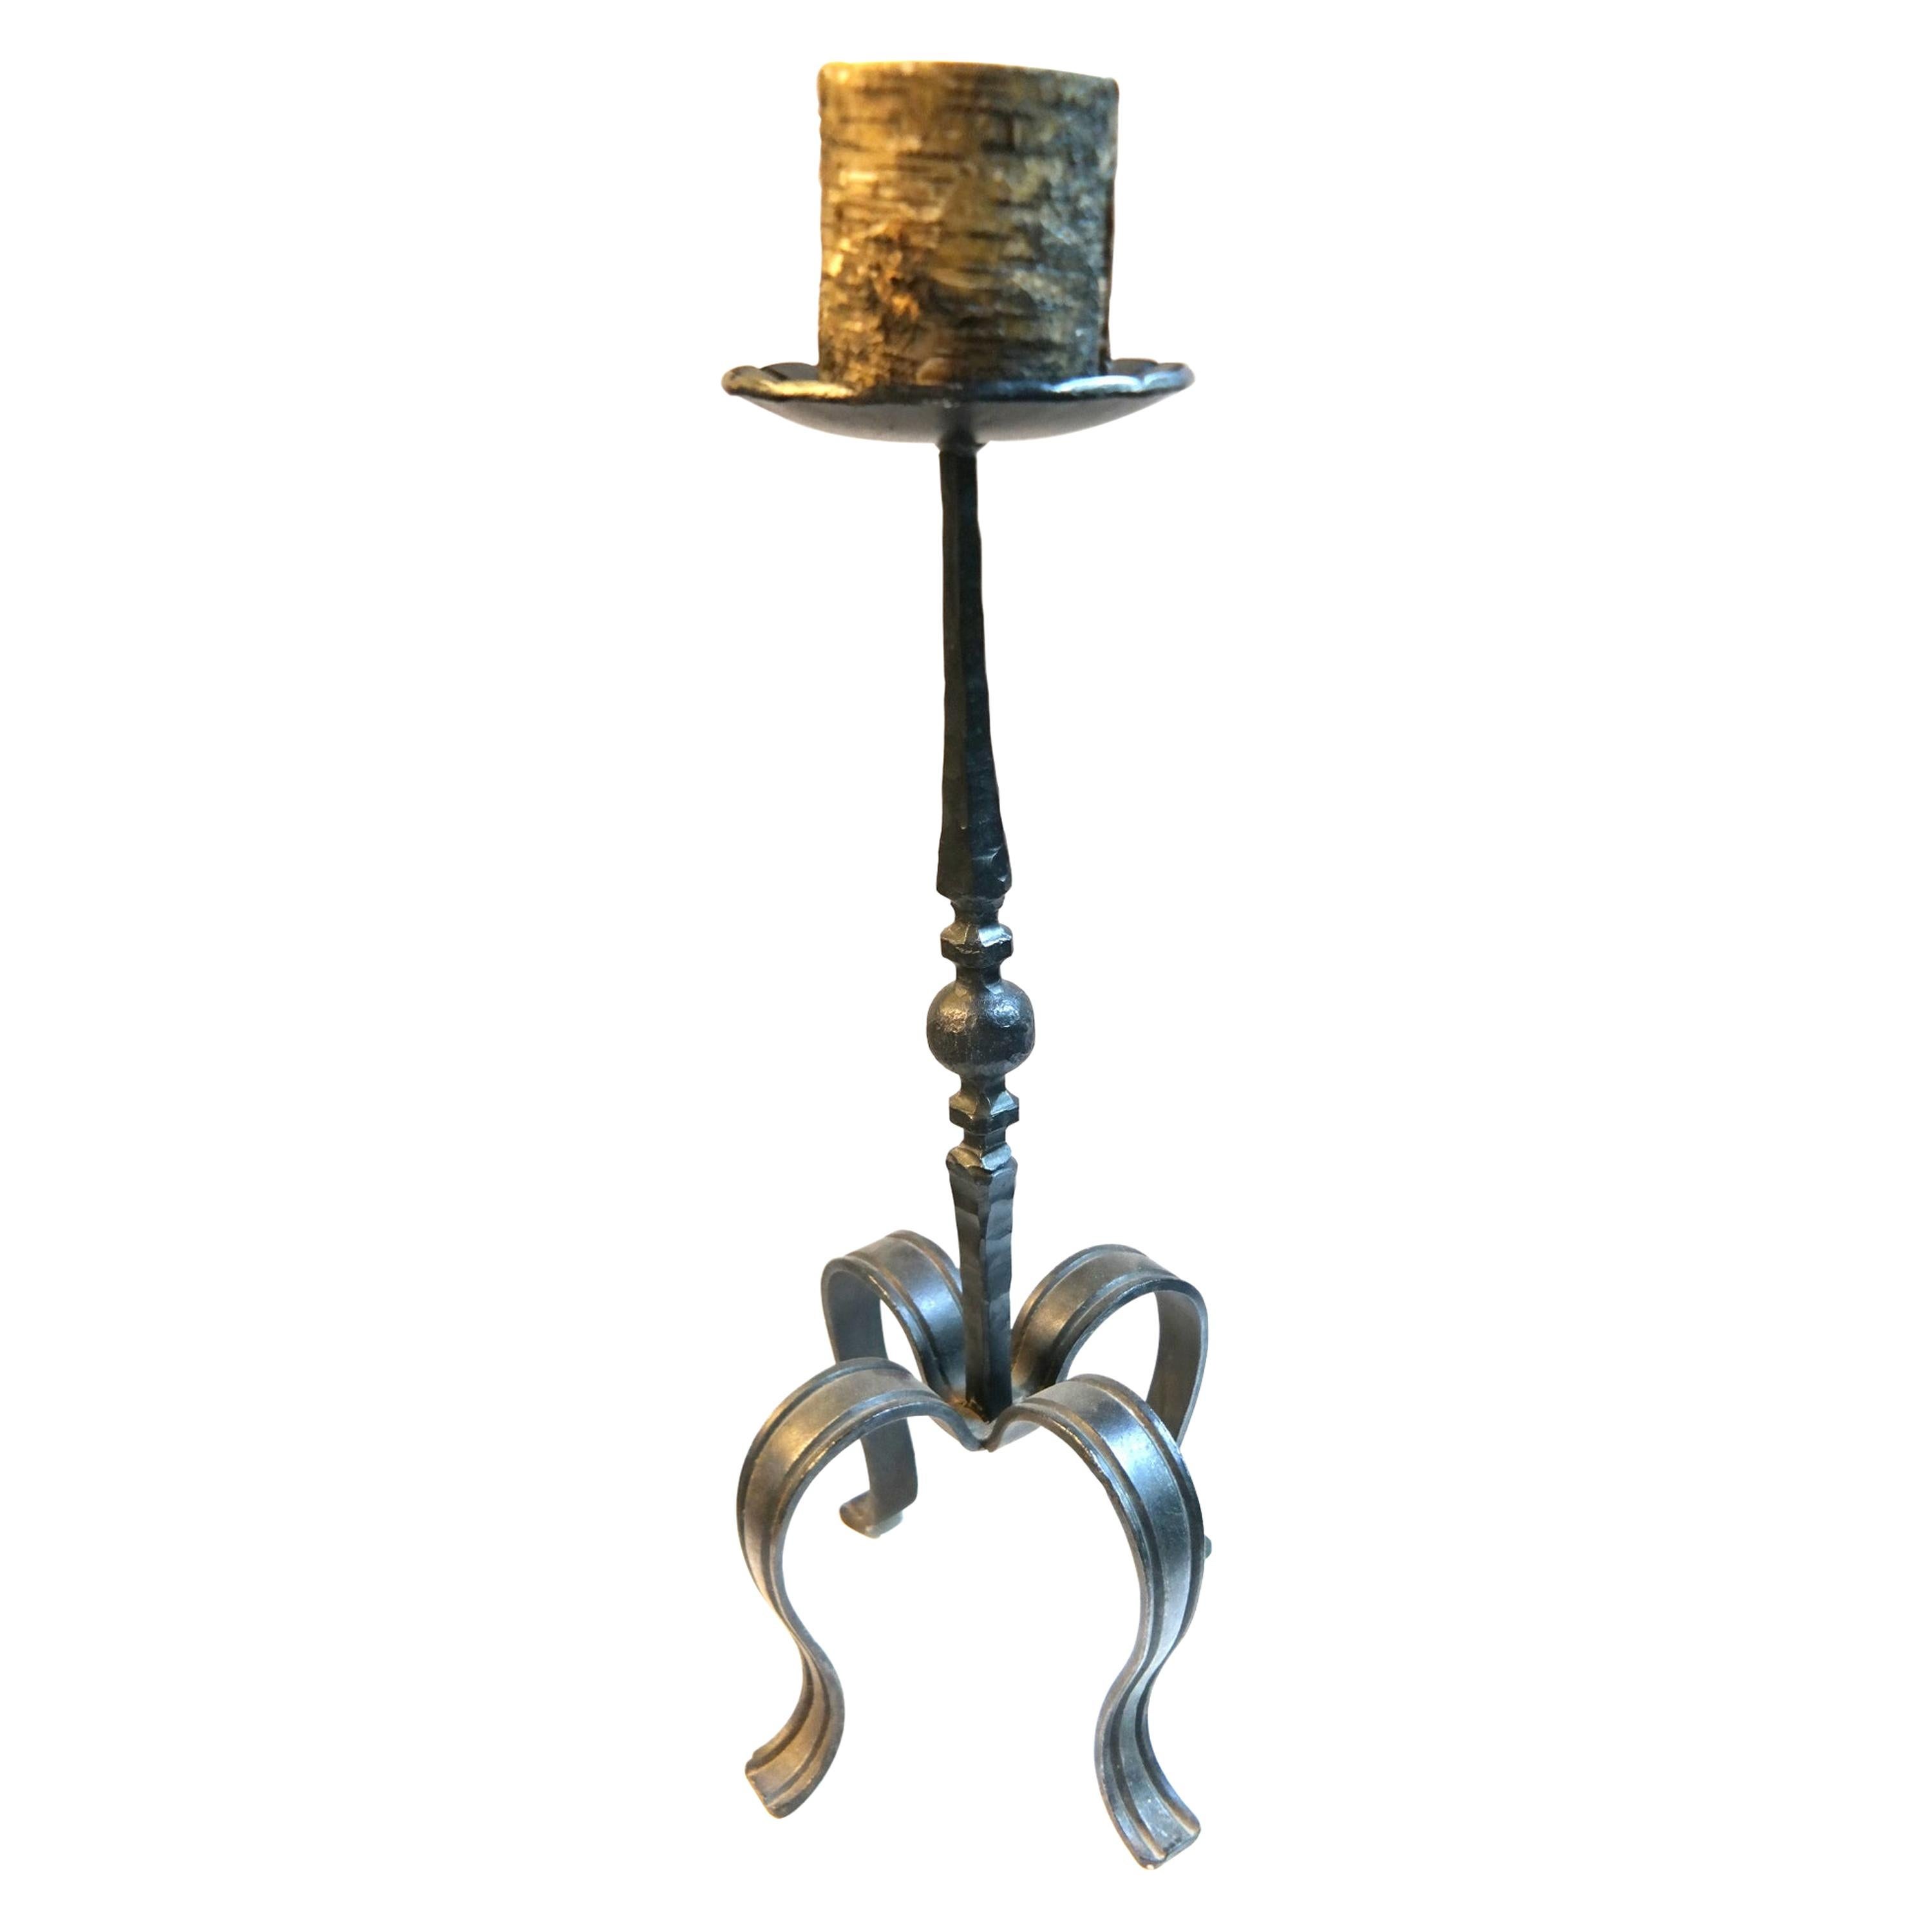 Handcrafted Wrought Iron Floor Candleholder, 1970s